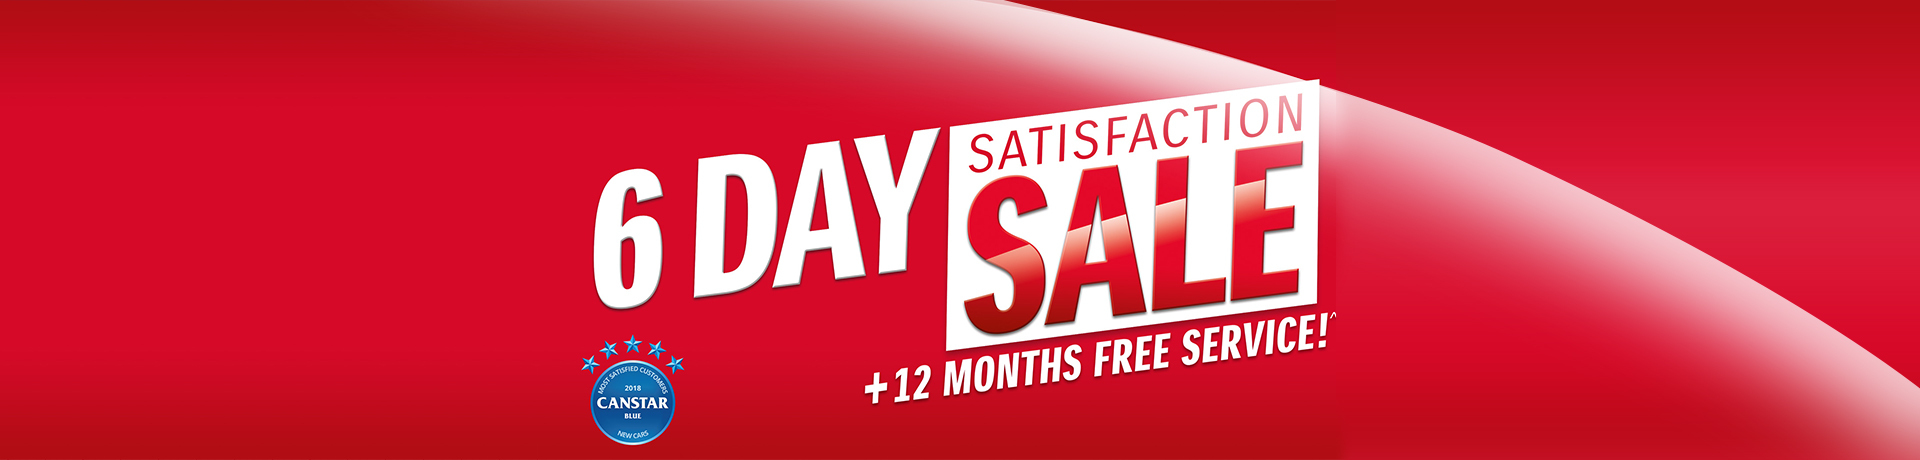 6 Day Satisfaction Sale